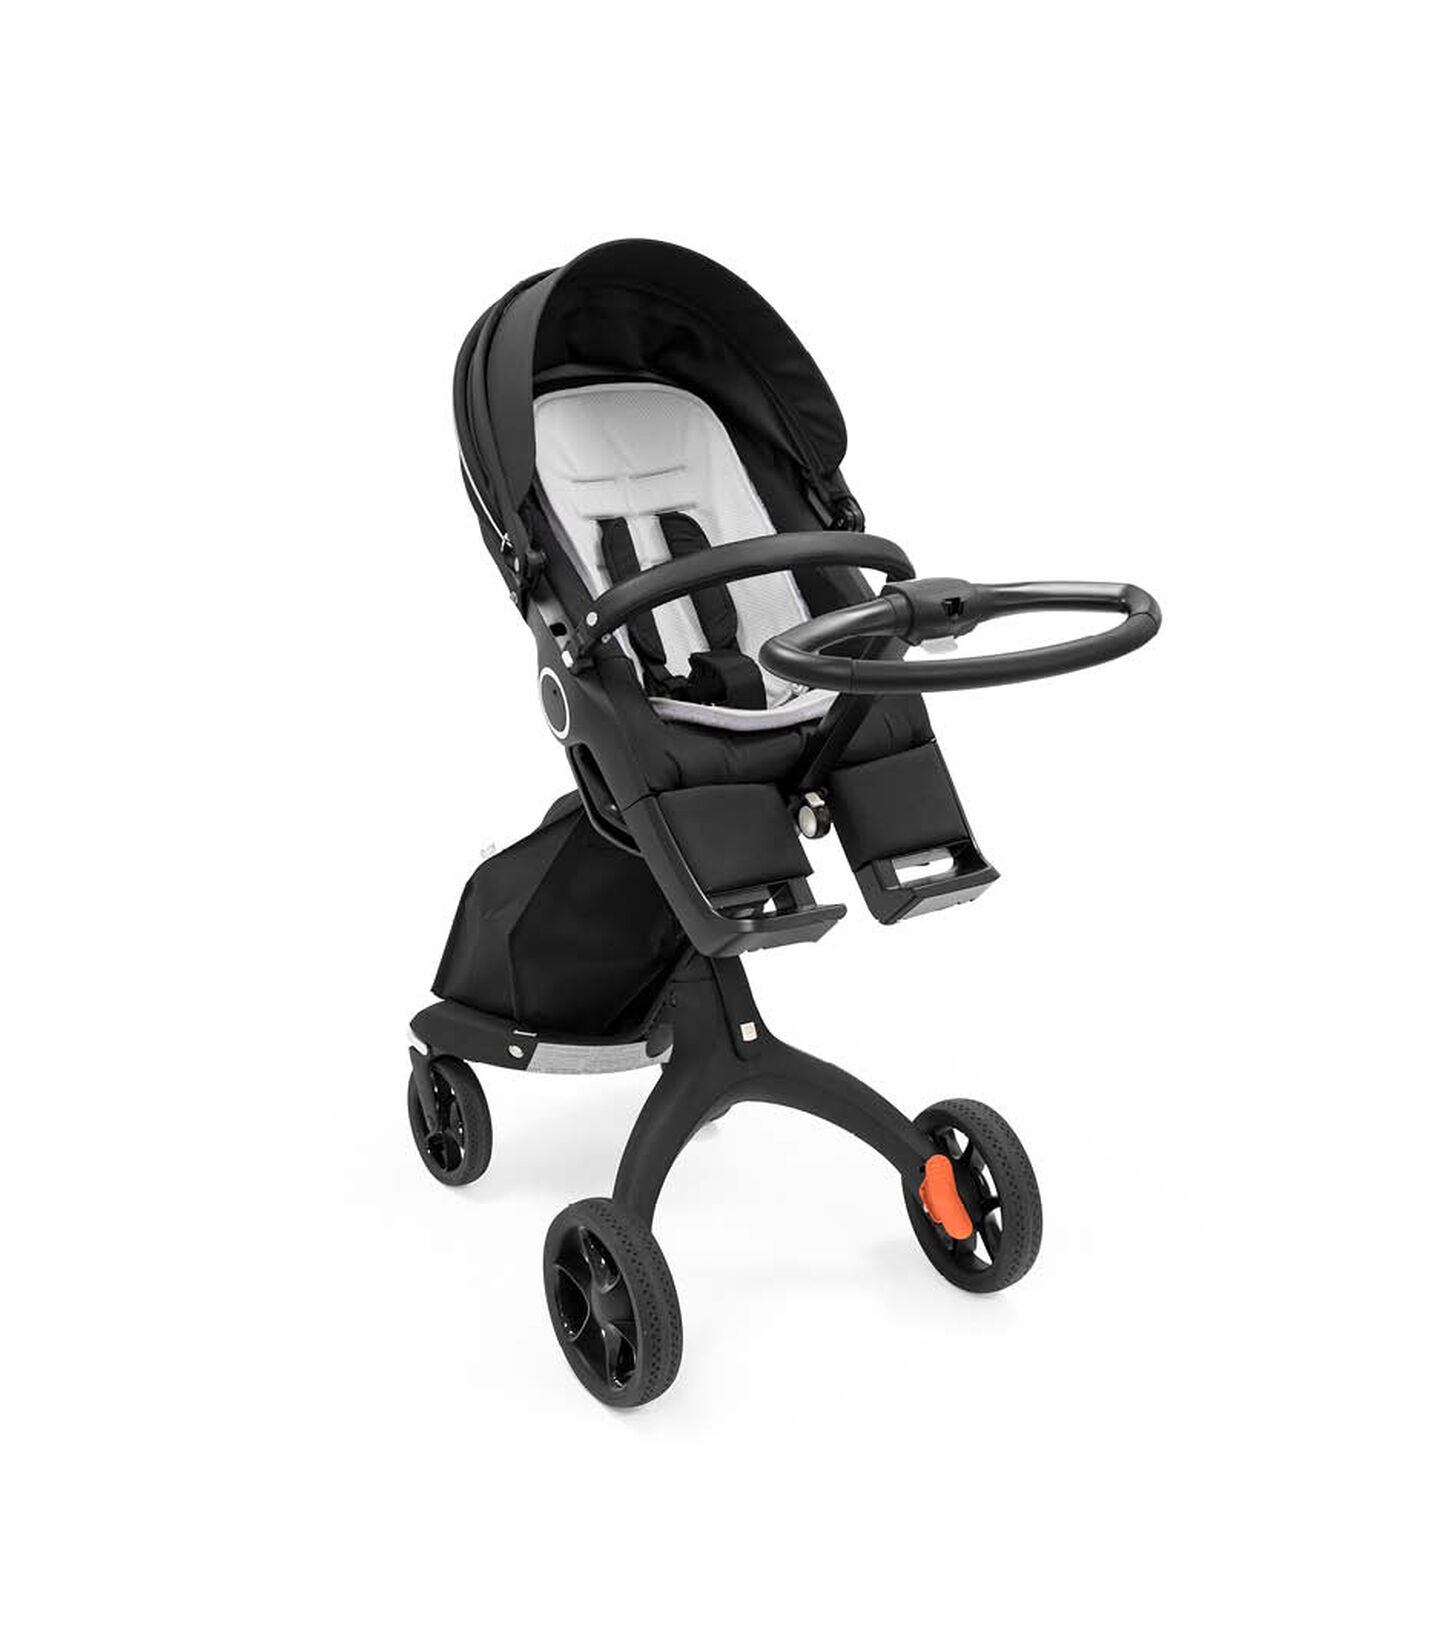 Stokke® Xplory® with Stokke® Stroller Seat and tokke® Stroller All Weather Inlay, cooling polyester. view 2